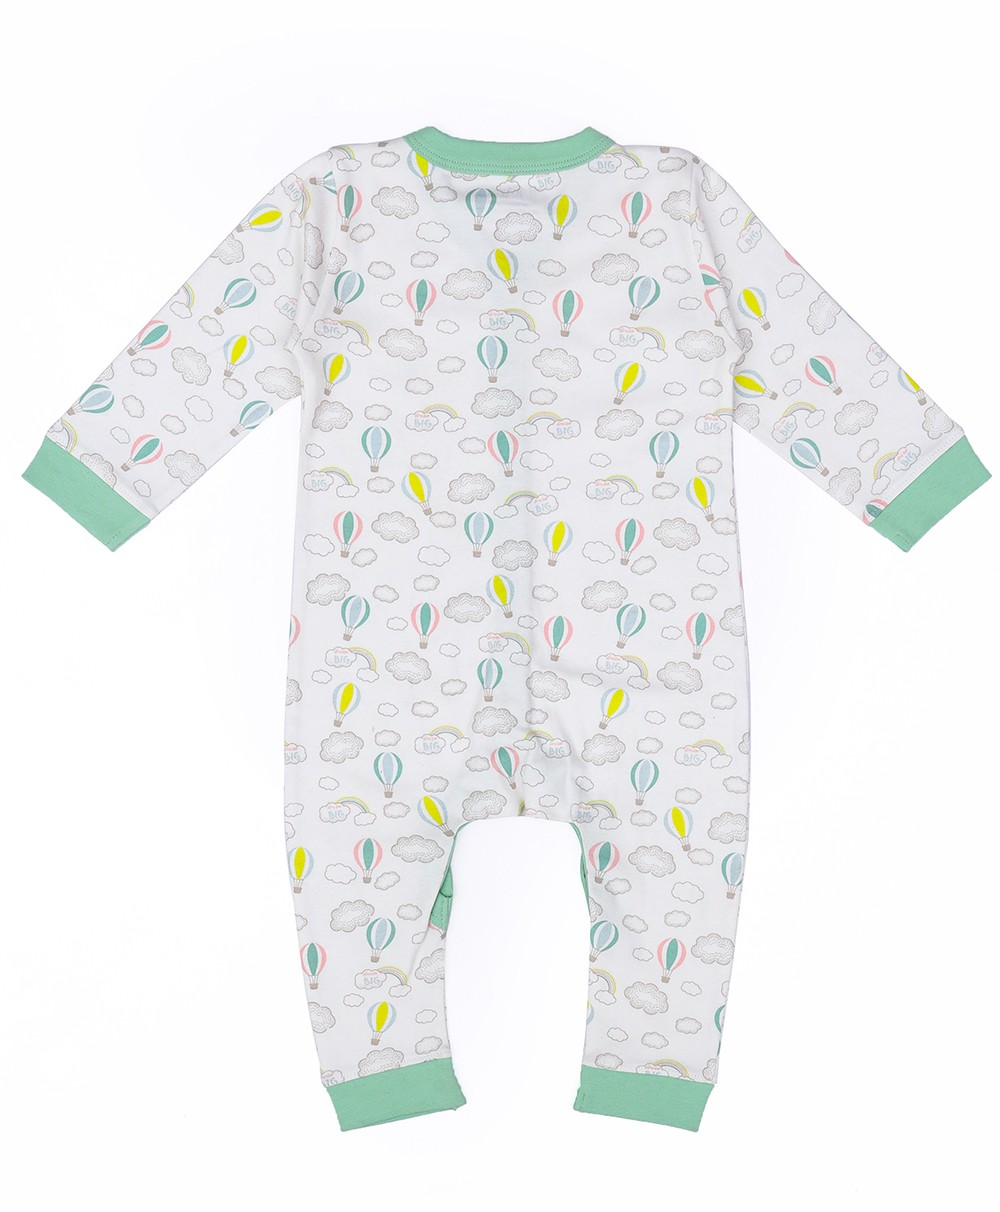 Comfy Knitted Sleep Suit - Arcus (Pack of 3)